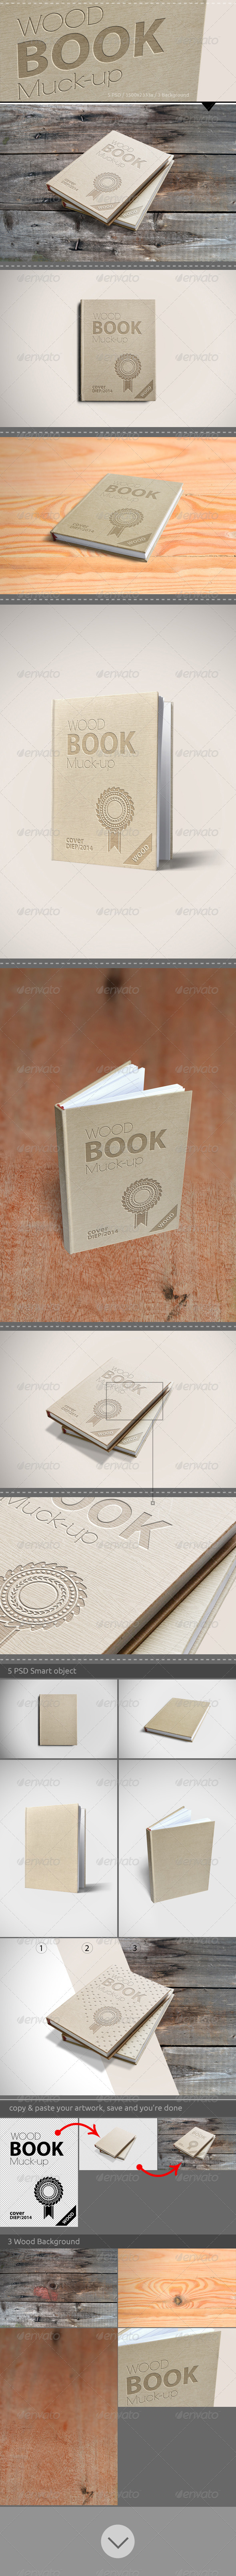 GraphicRiver Book Mock-Up 7232893